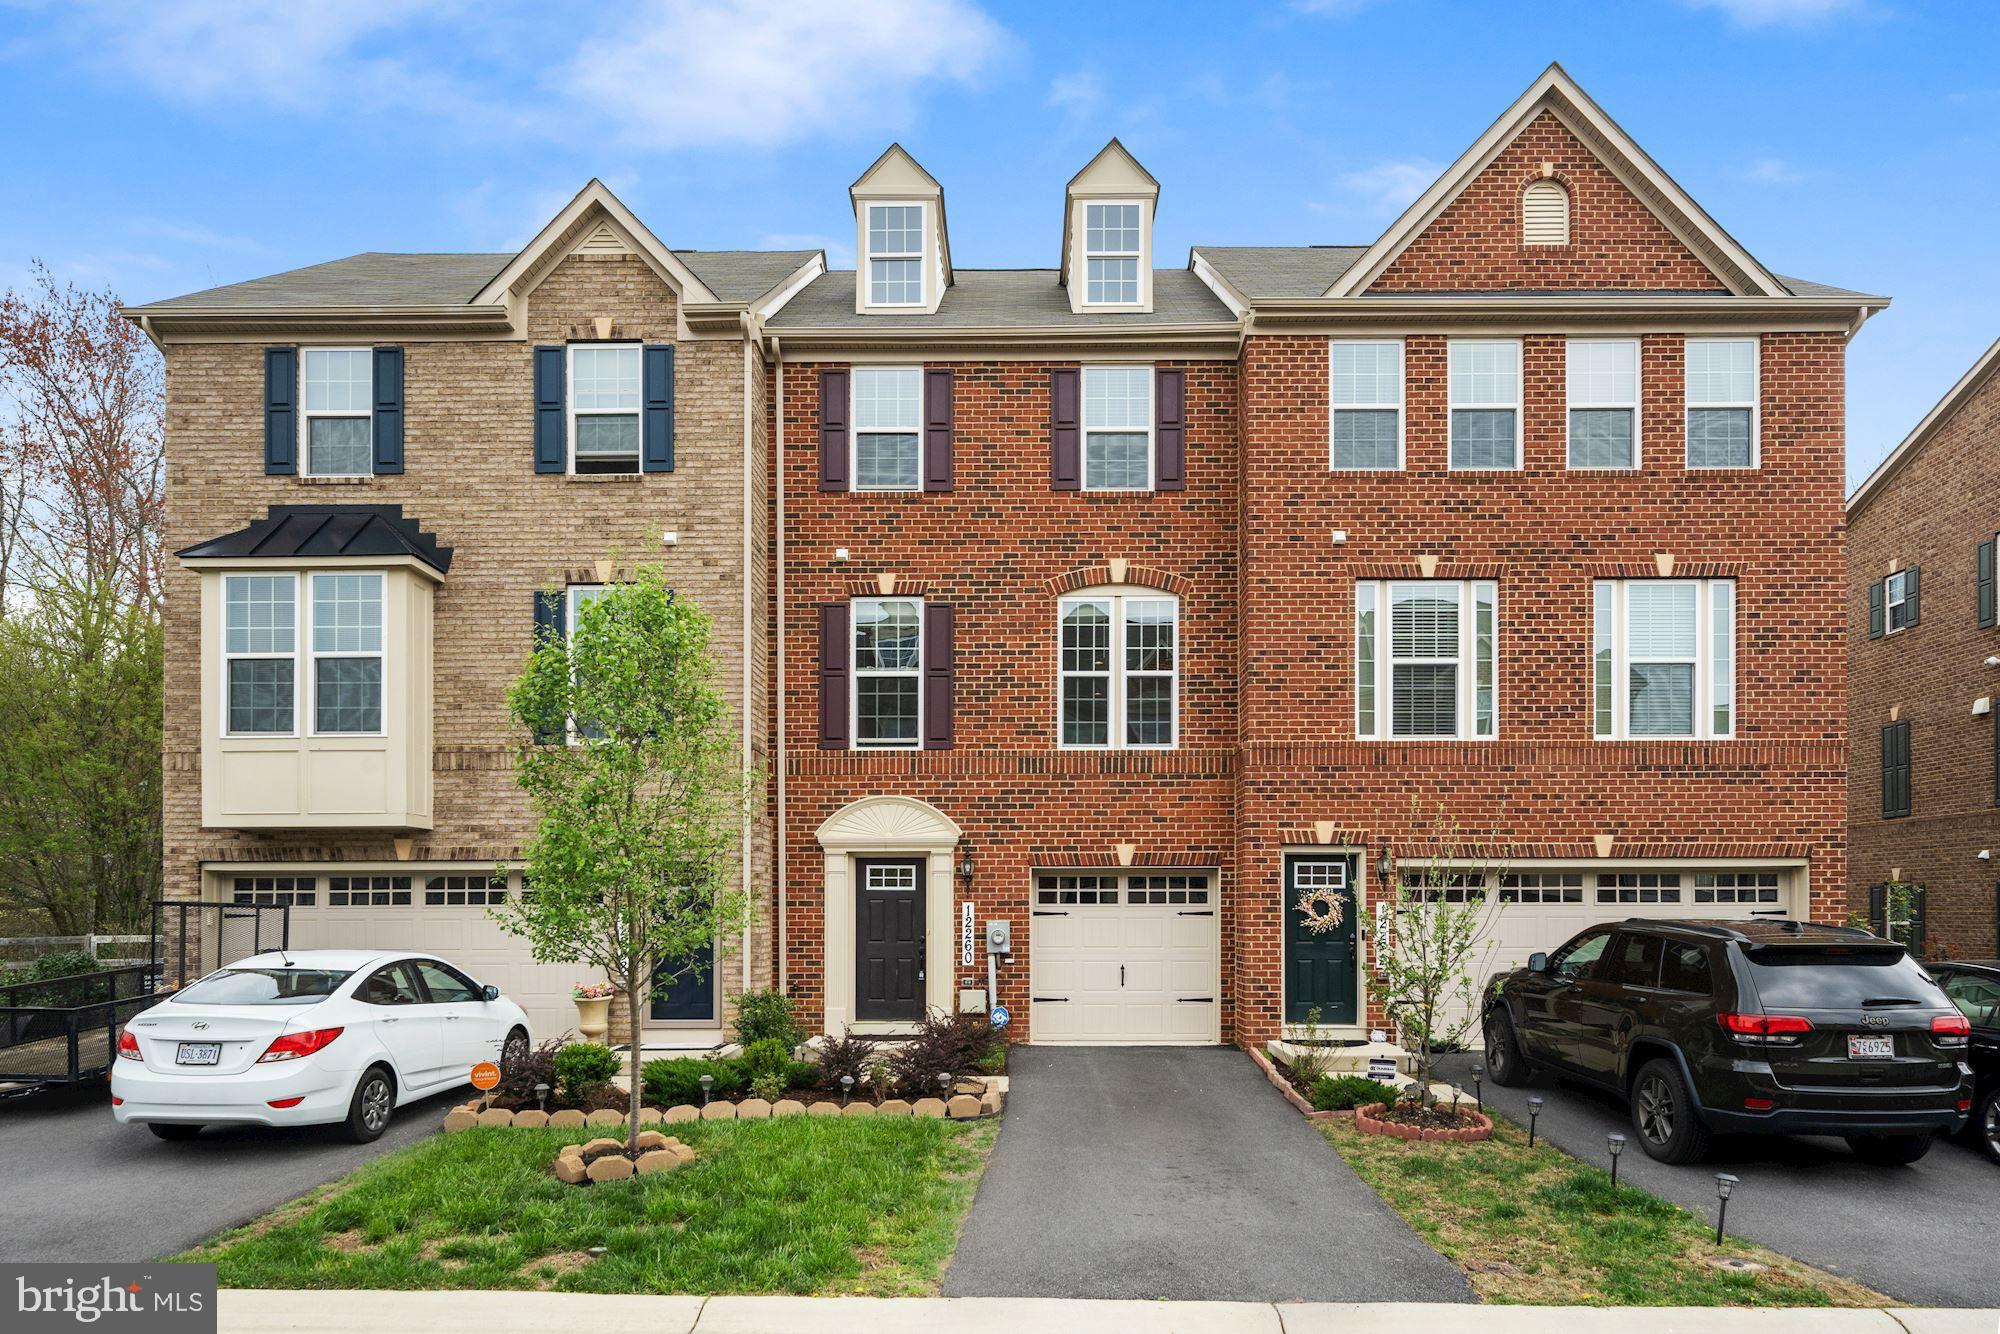 SHOWINGS ON SATURDAY AND SUNDAY ONLY!!! Welcome Home! Aptly placed on Moon Dance PL, this beautiful